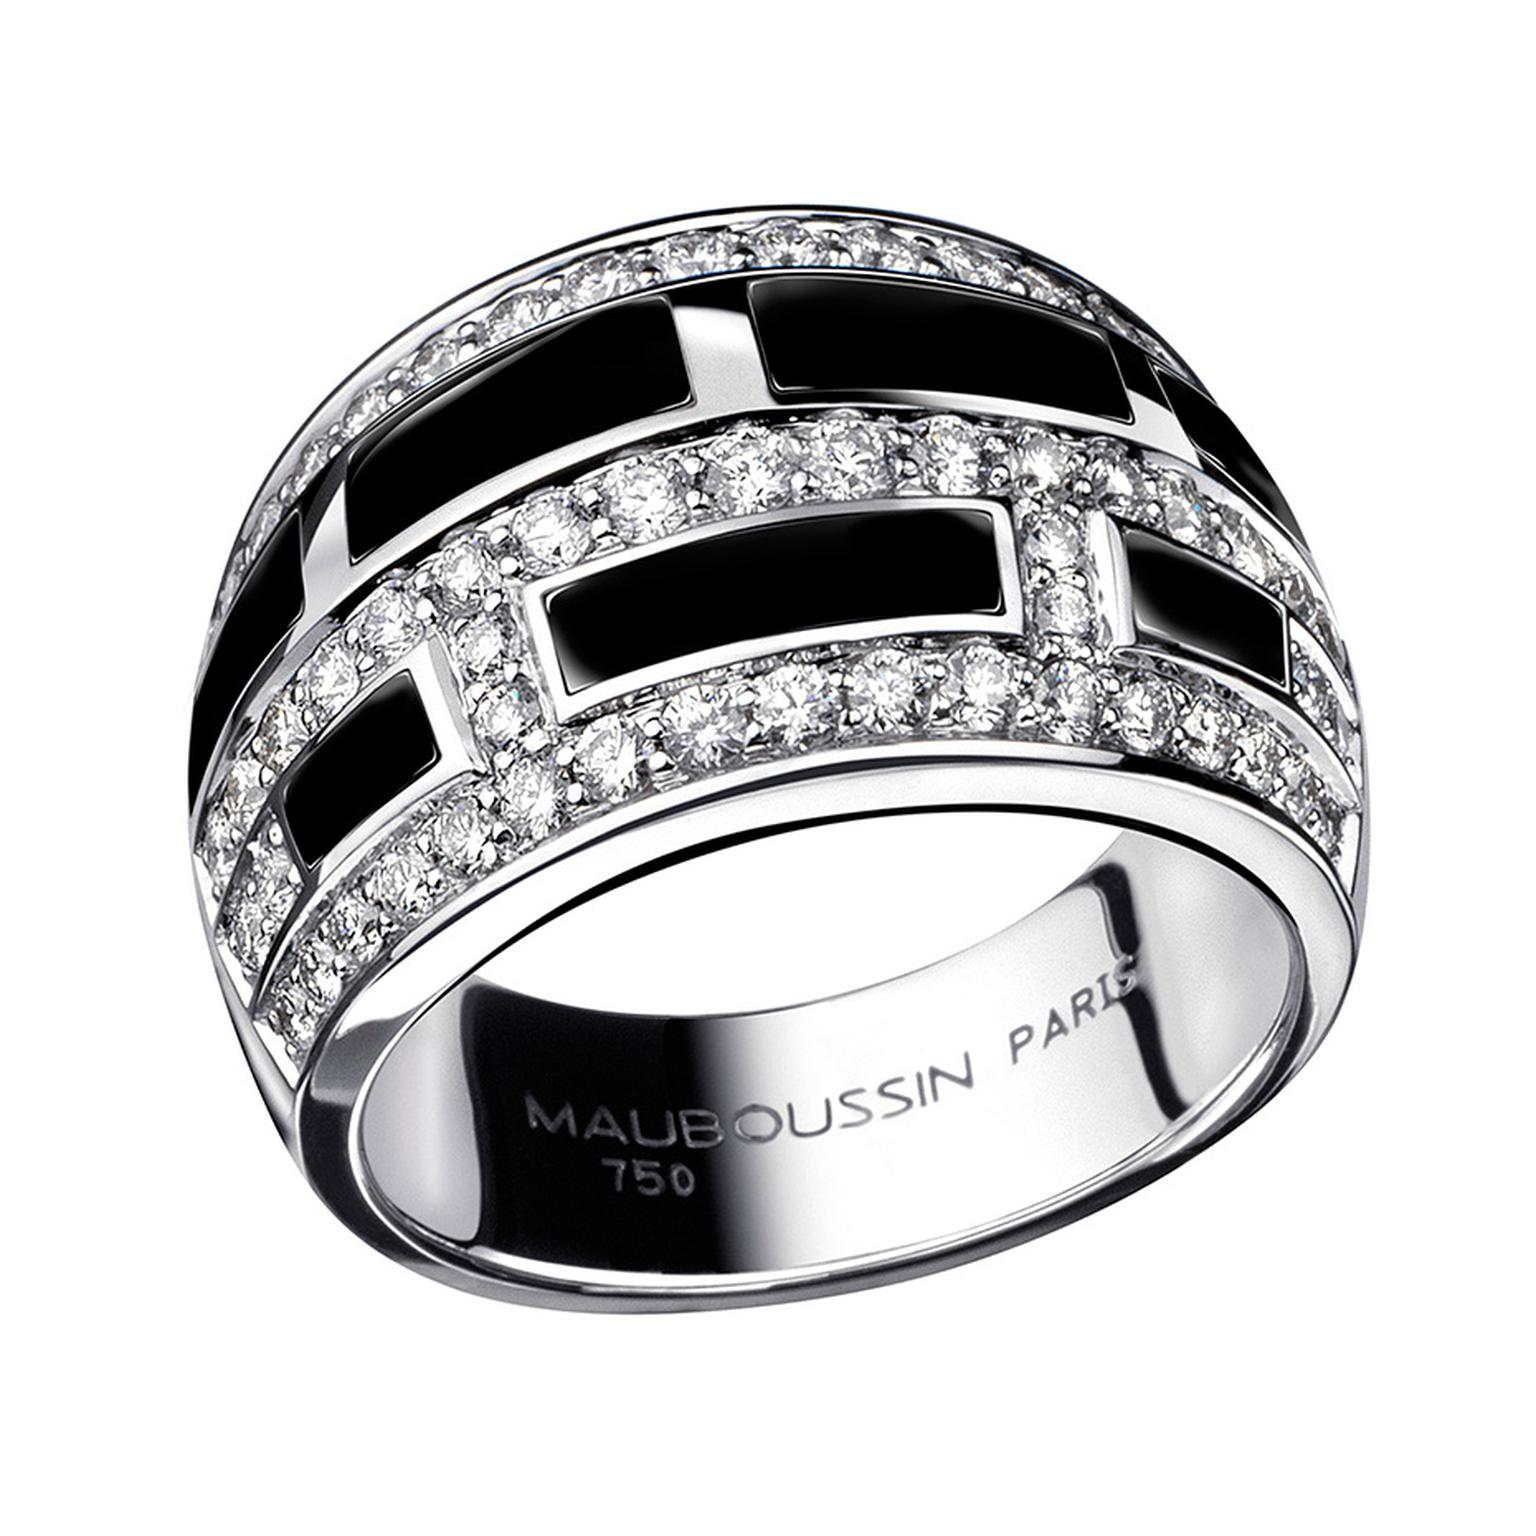 The monochromatic Le Vice et la Vertu ring, from the Bonbon collection, is inset with black lacquer and pavé diamonds ($6,200).